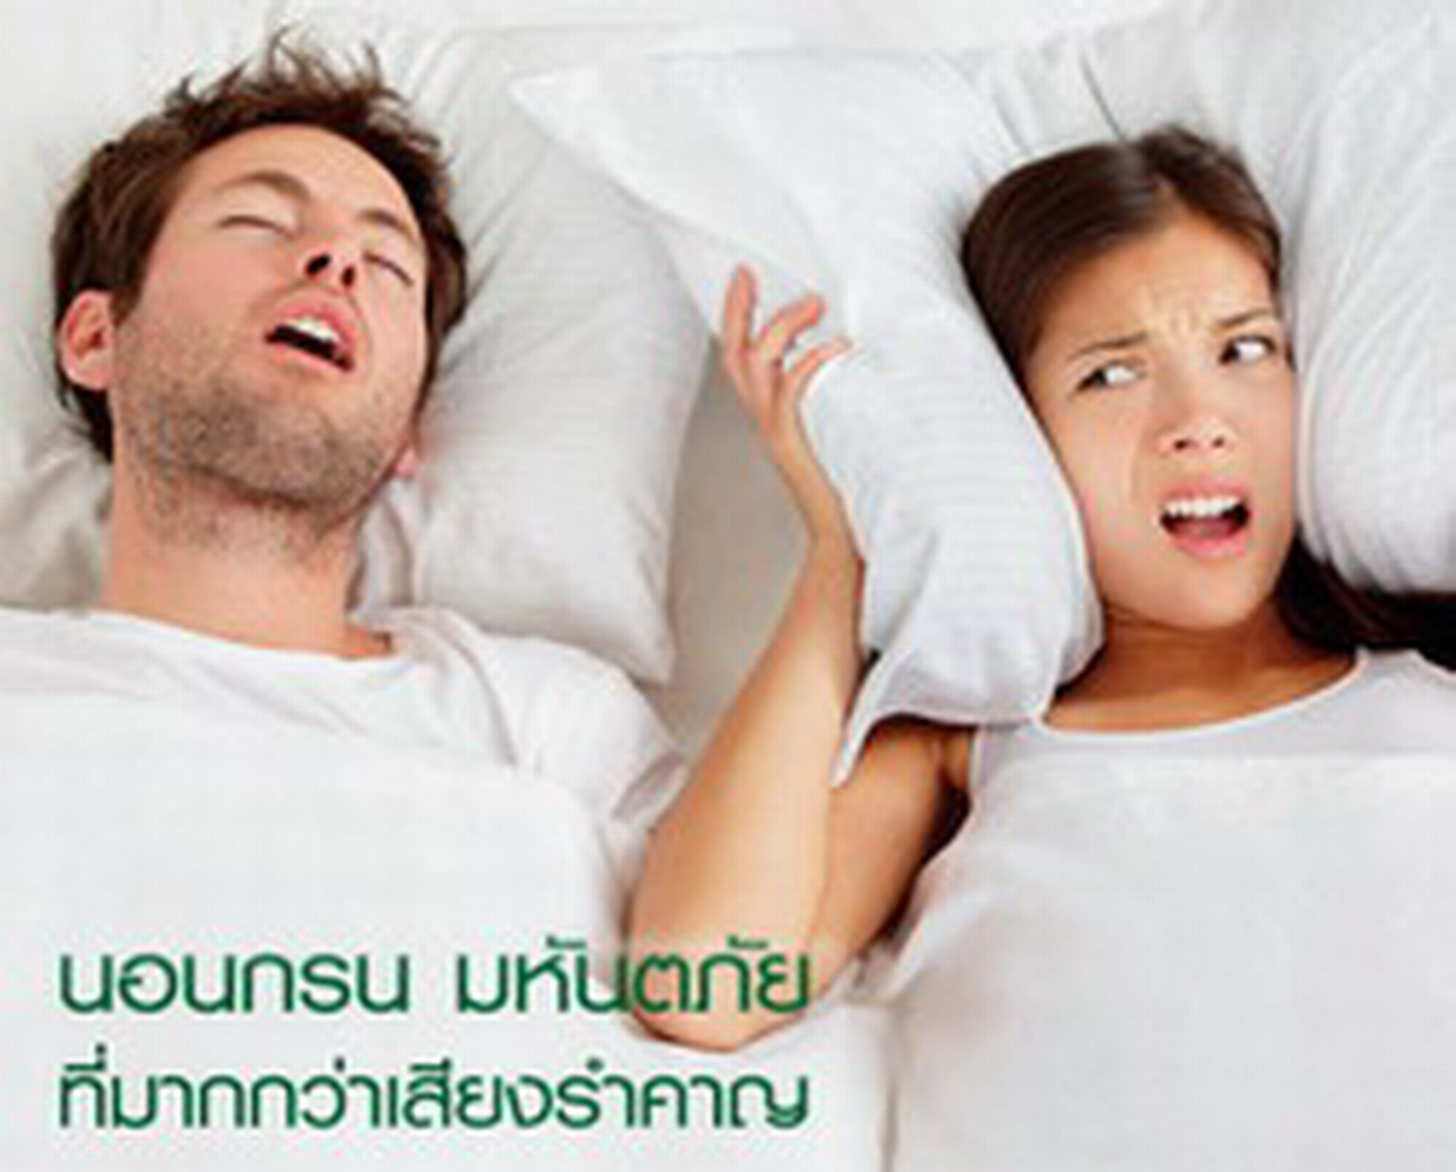 http://thonburihospital.com/2015_new/ศูนย์ Sleep Lab